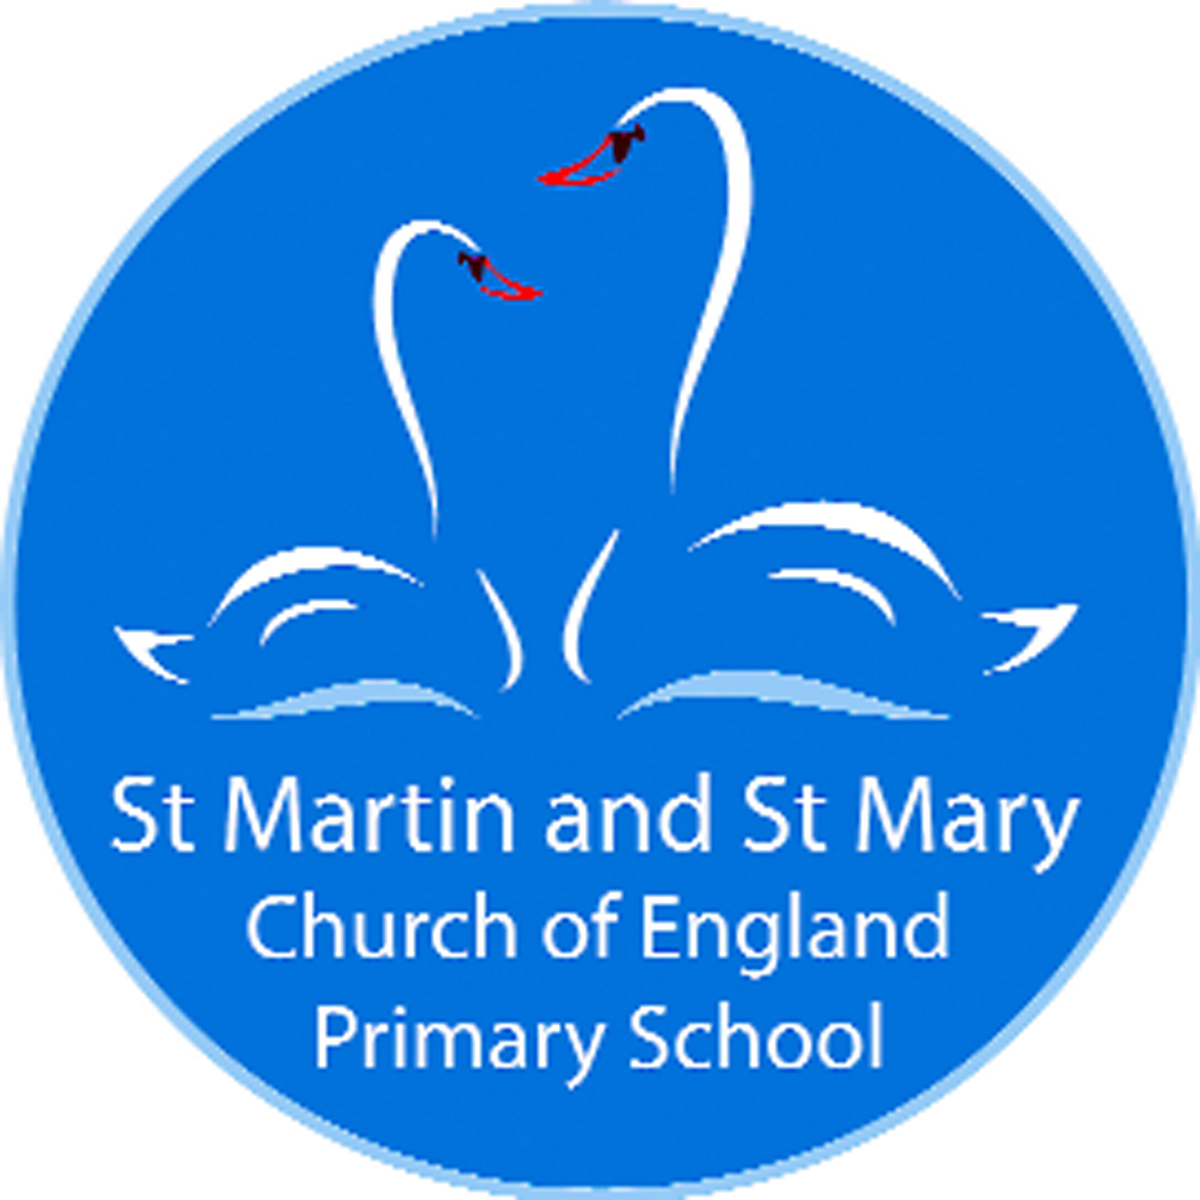 New primary school opens today in